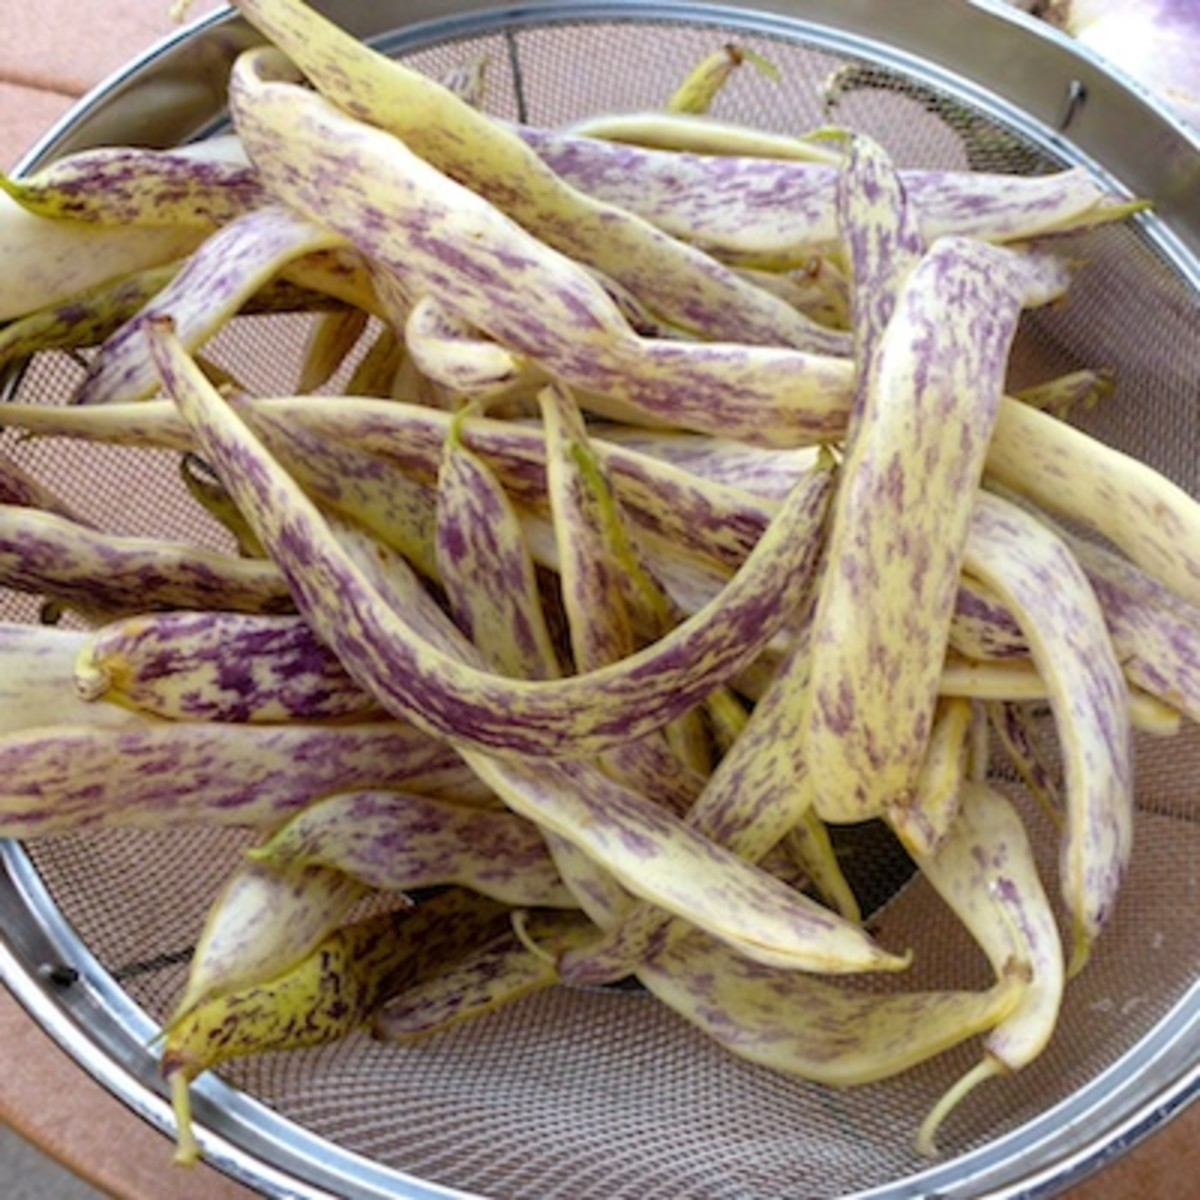 Good as a stringless snap bean or a light brown dried bean with dark speckles.